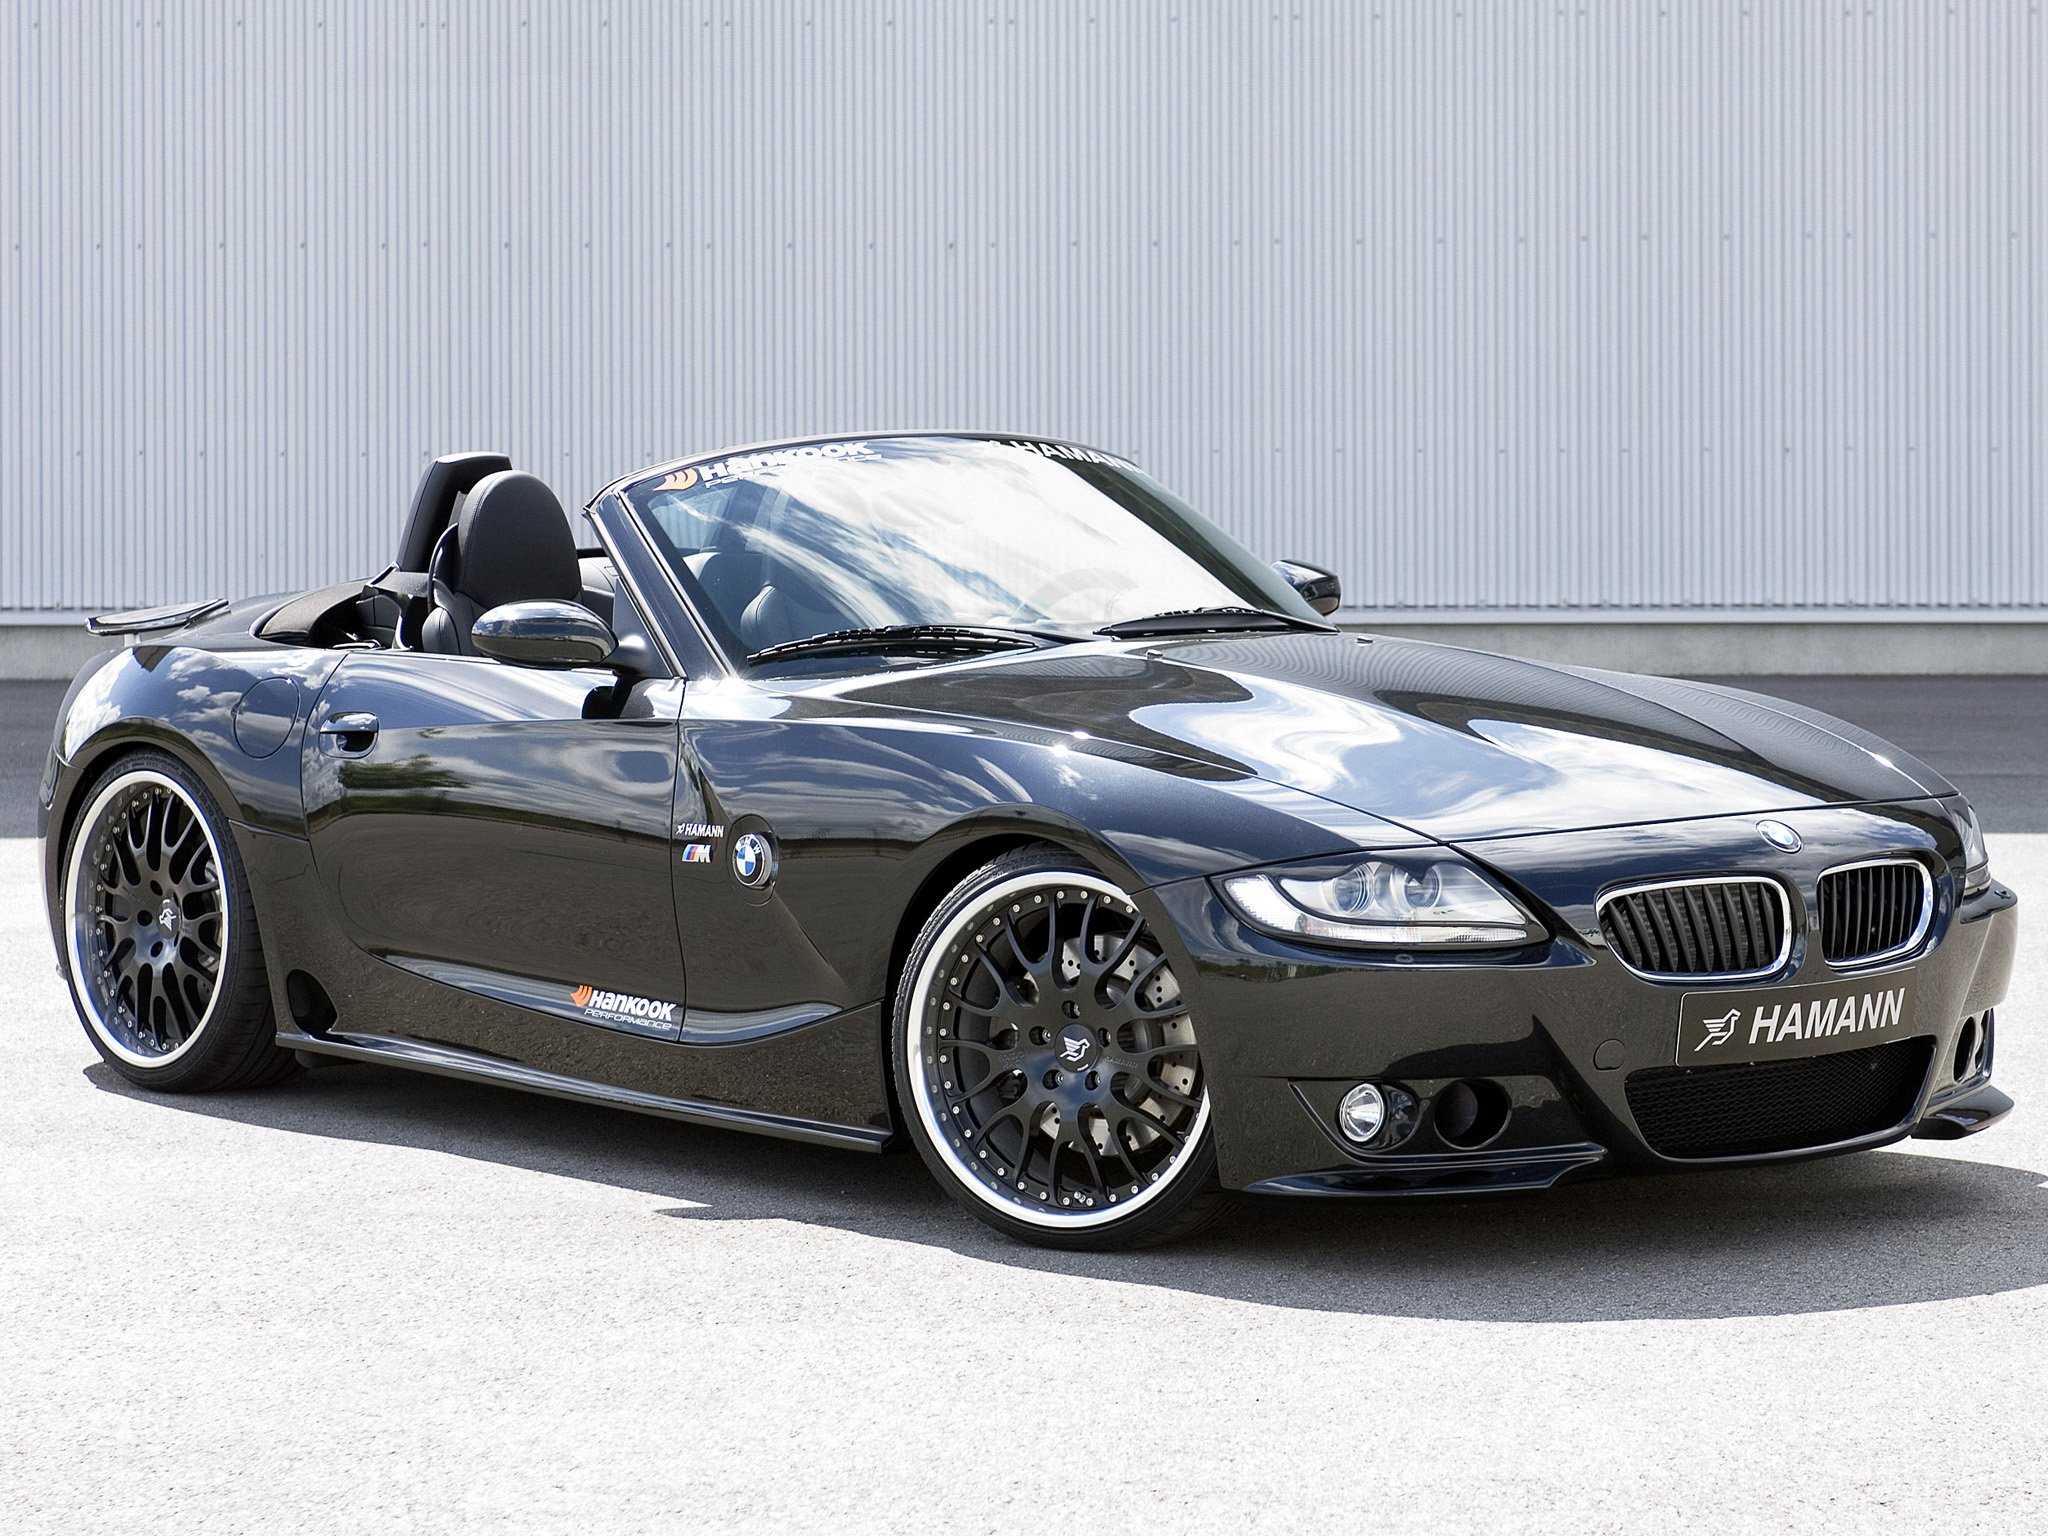 Hamann Bmw Z4 M Roadster E85 Cars Modified 2008 Wallpaper 2048x1536 744491 Wallpaperup